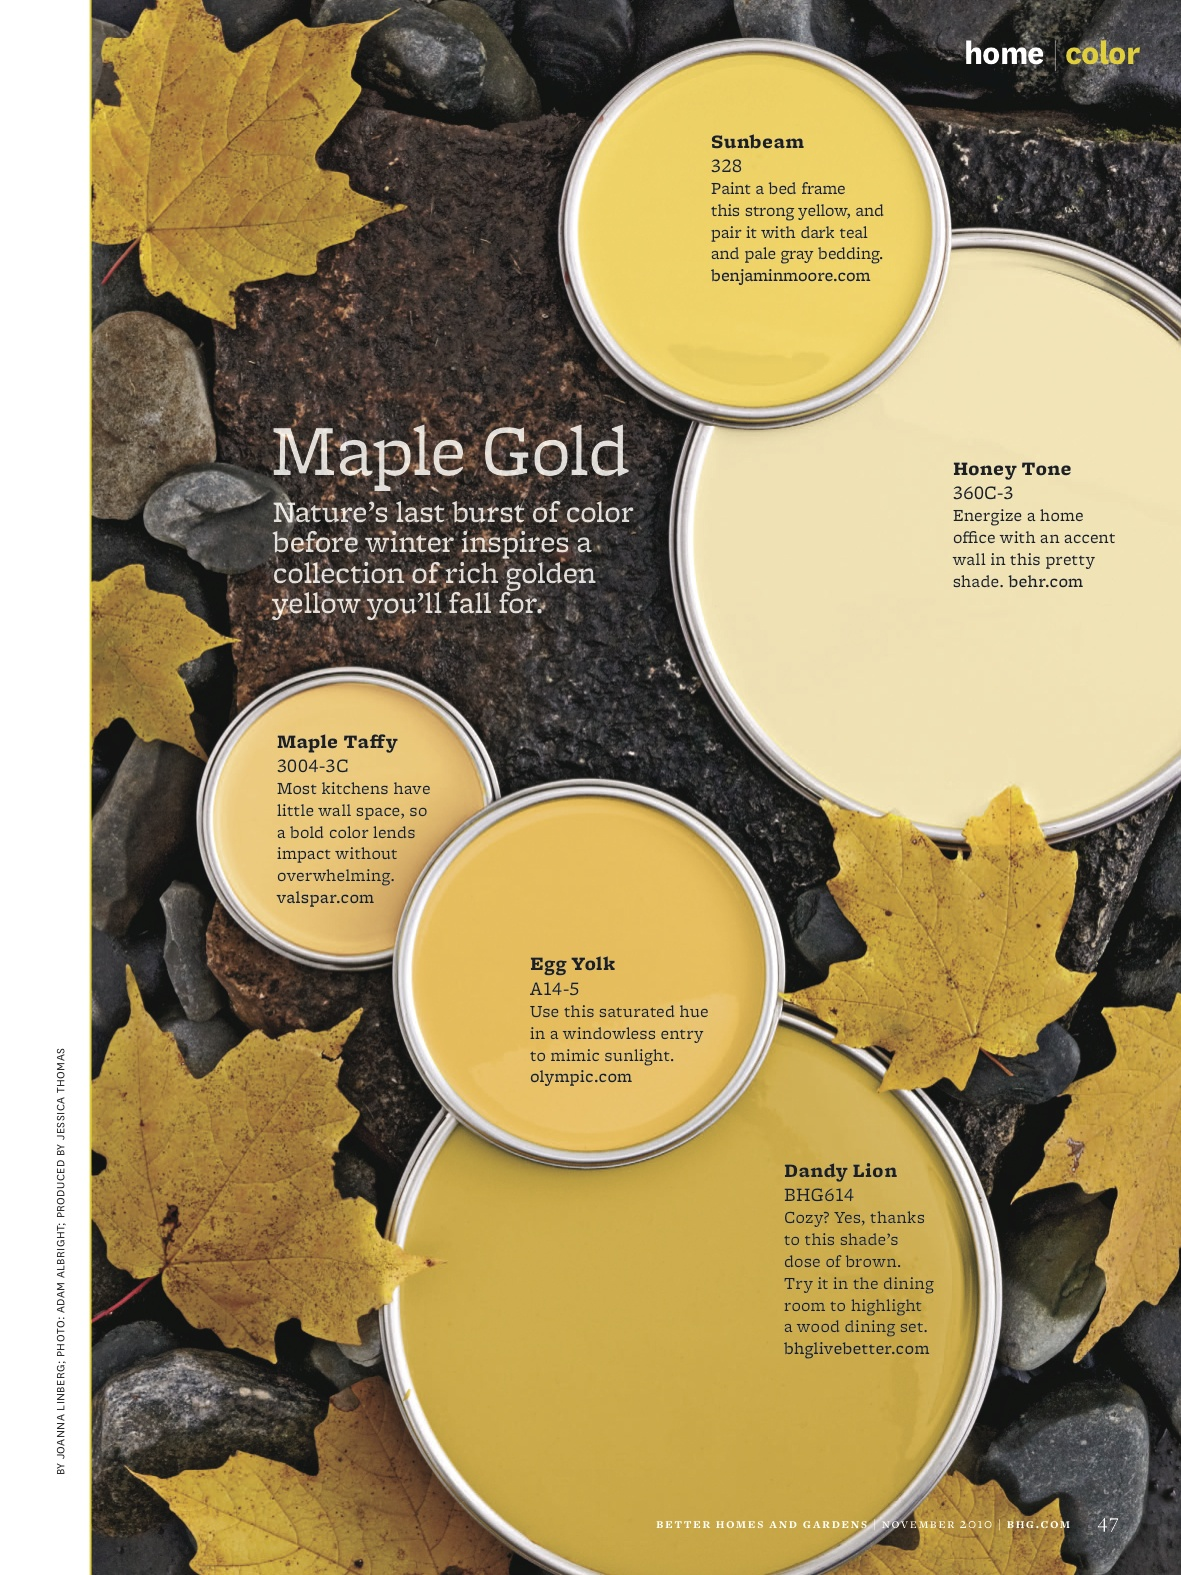 Maple Gold Paint Colors From Better Homes Gardens Sunbeam By Benjamin Moore Honey Tone Behr Taffy Valspar Egg Yolk Olympic Dandy Lion